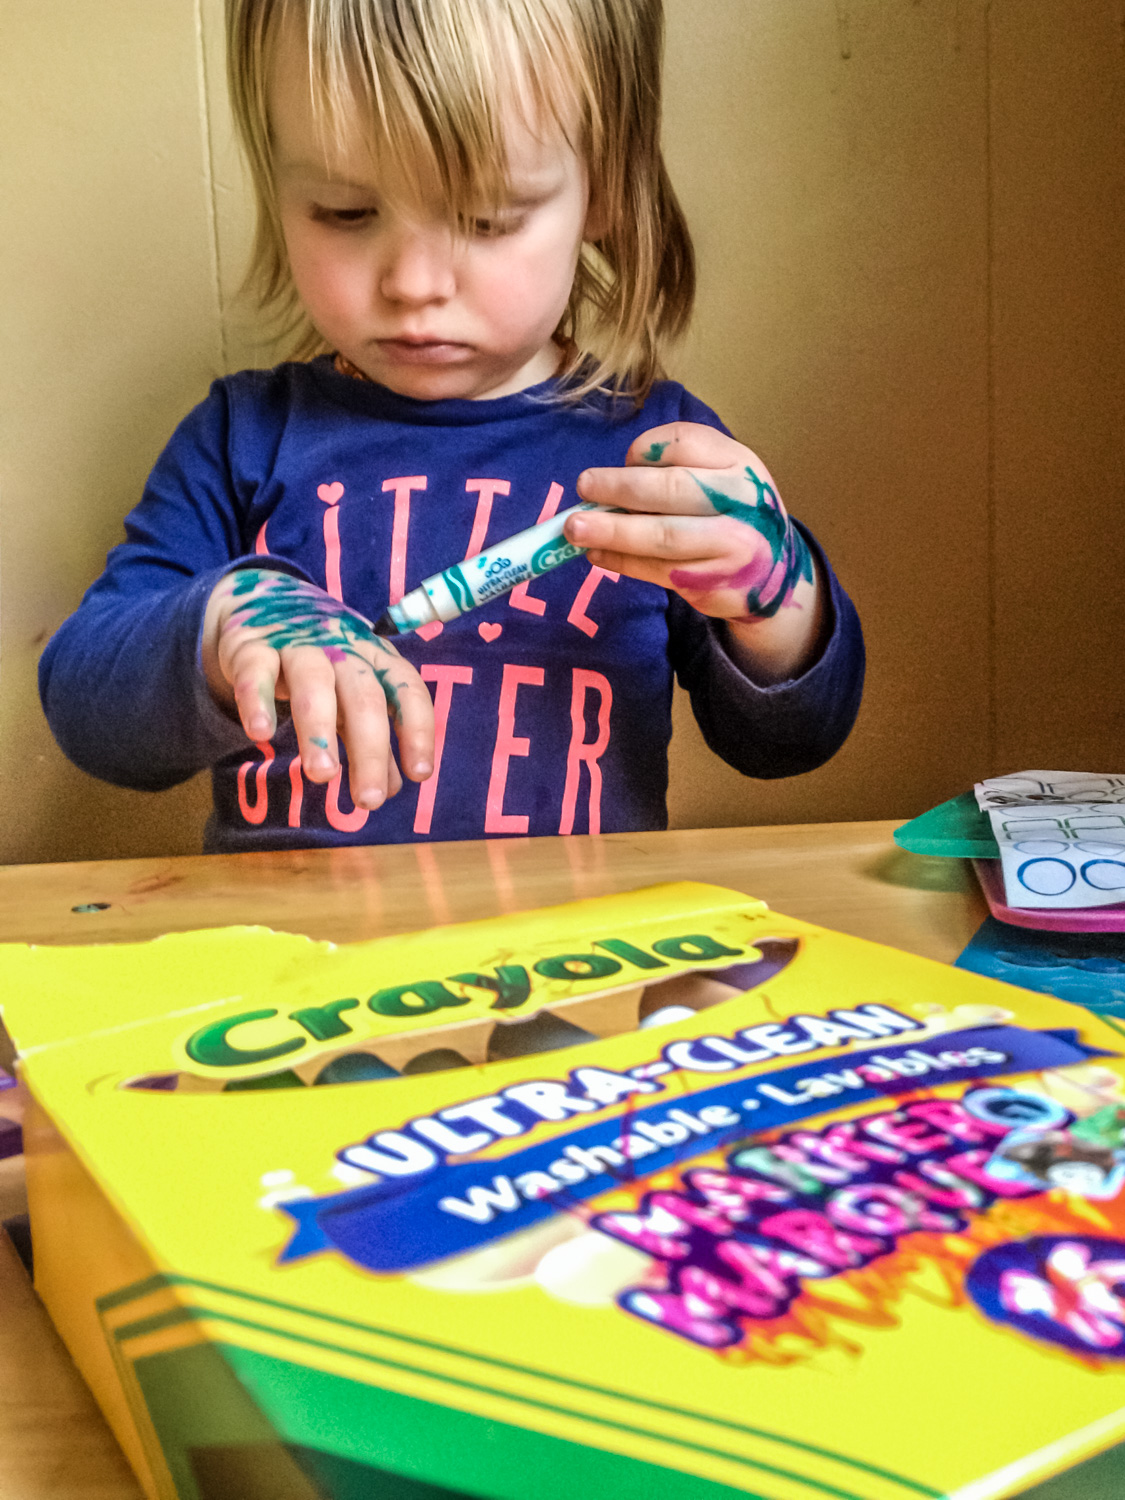 Image: A toddler with a marker, colors on everything without thought. We can be just as directionles...